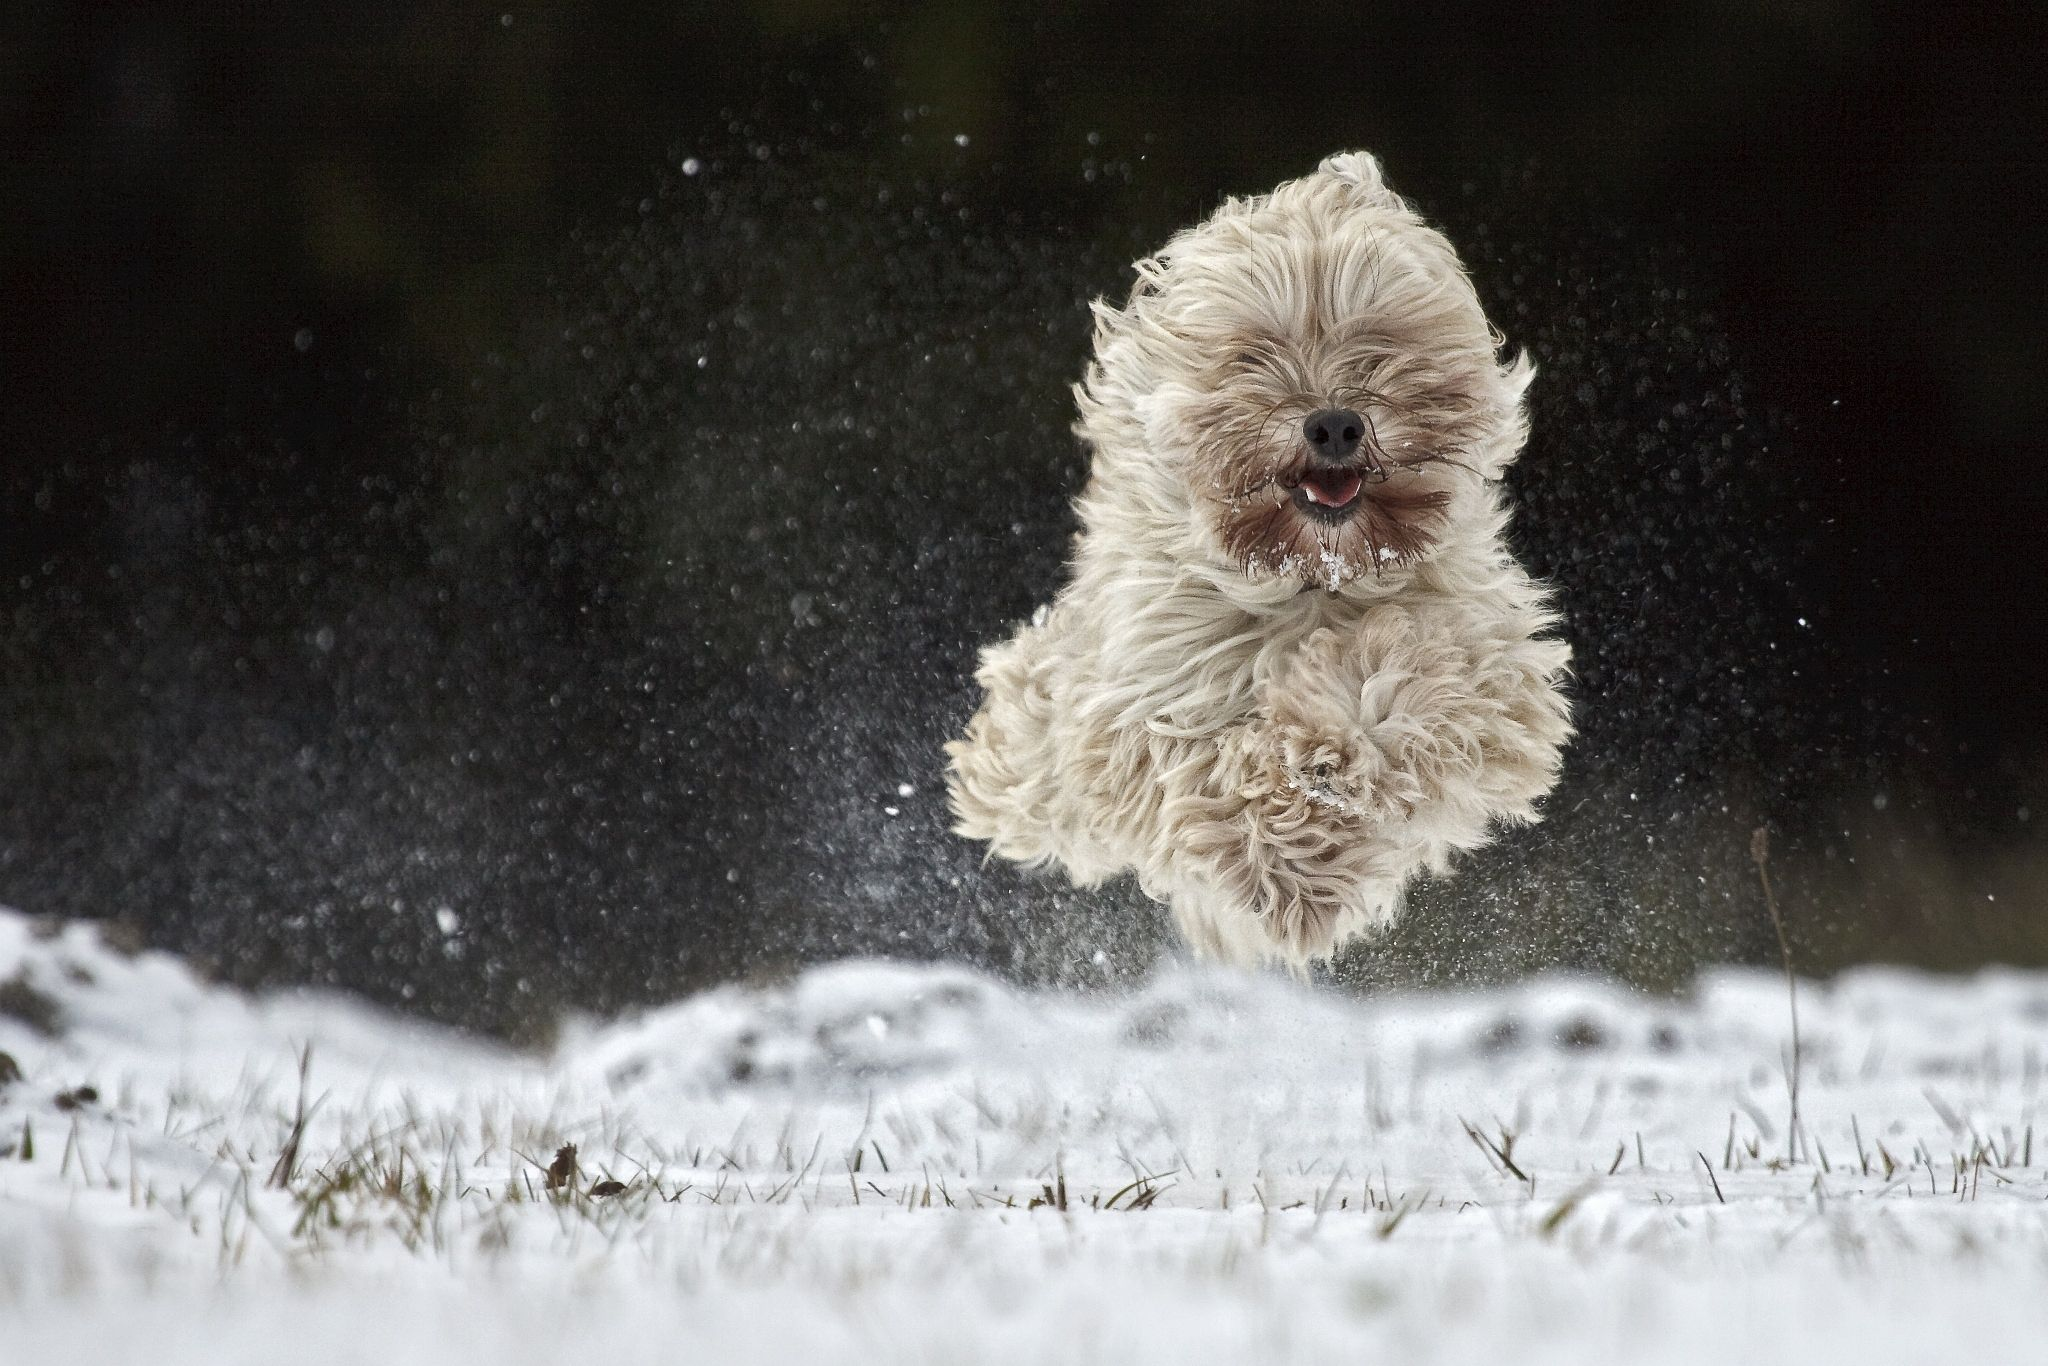 flying Pacco by Manfred Karisch on 500px